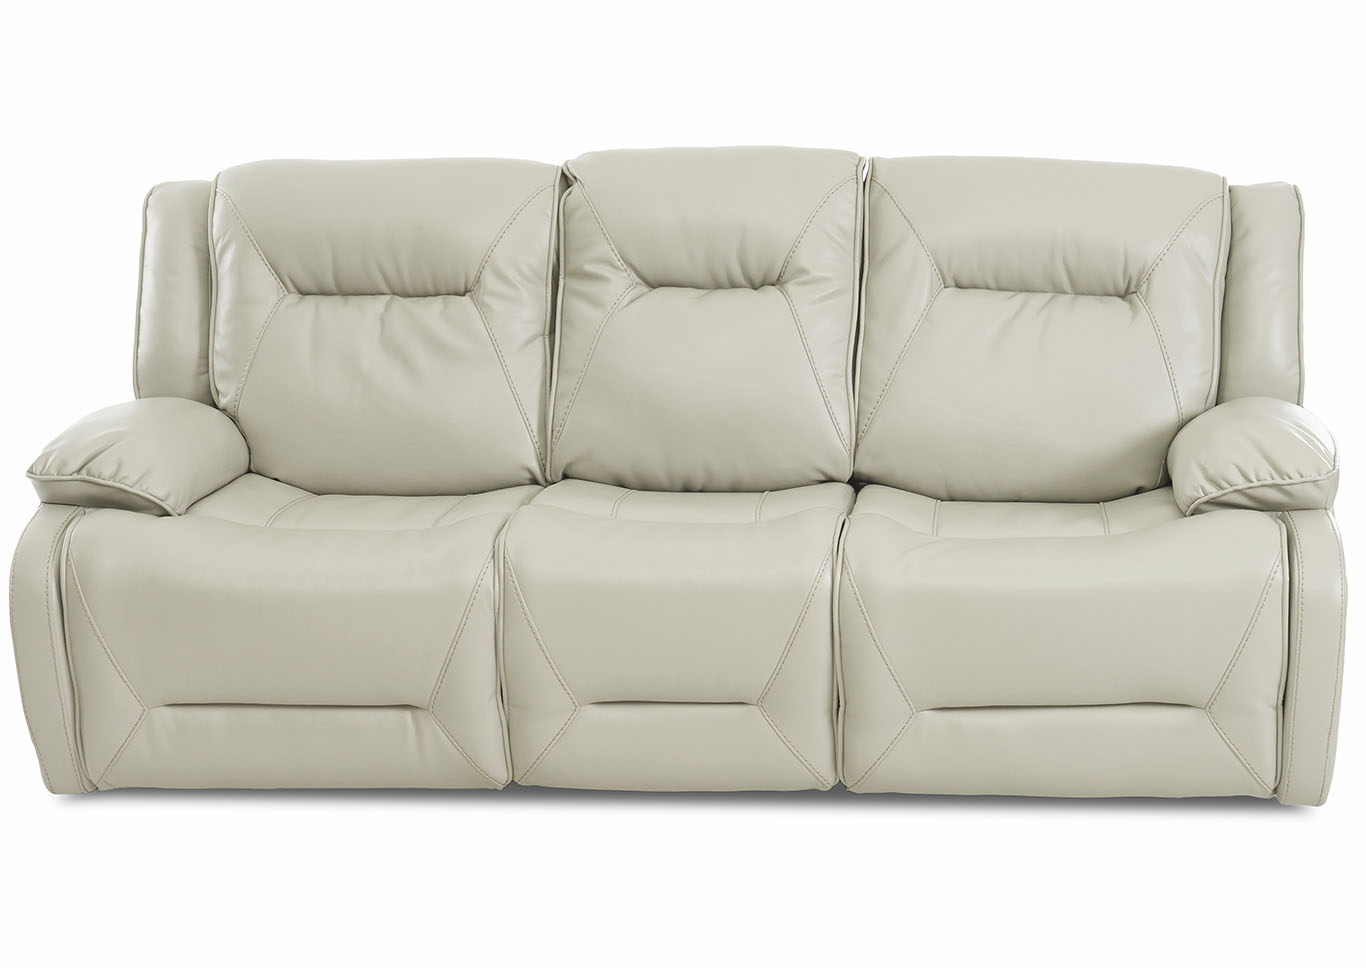 Dansby Jupiter Fog Power Reclining Leather Sofa,Klaussner Home Furnishings